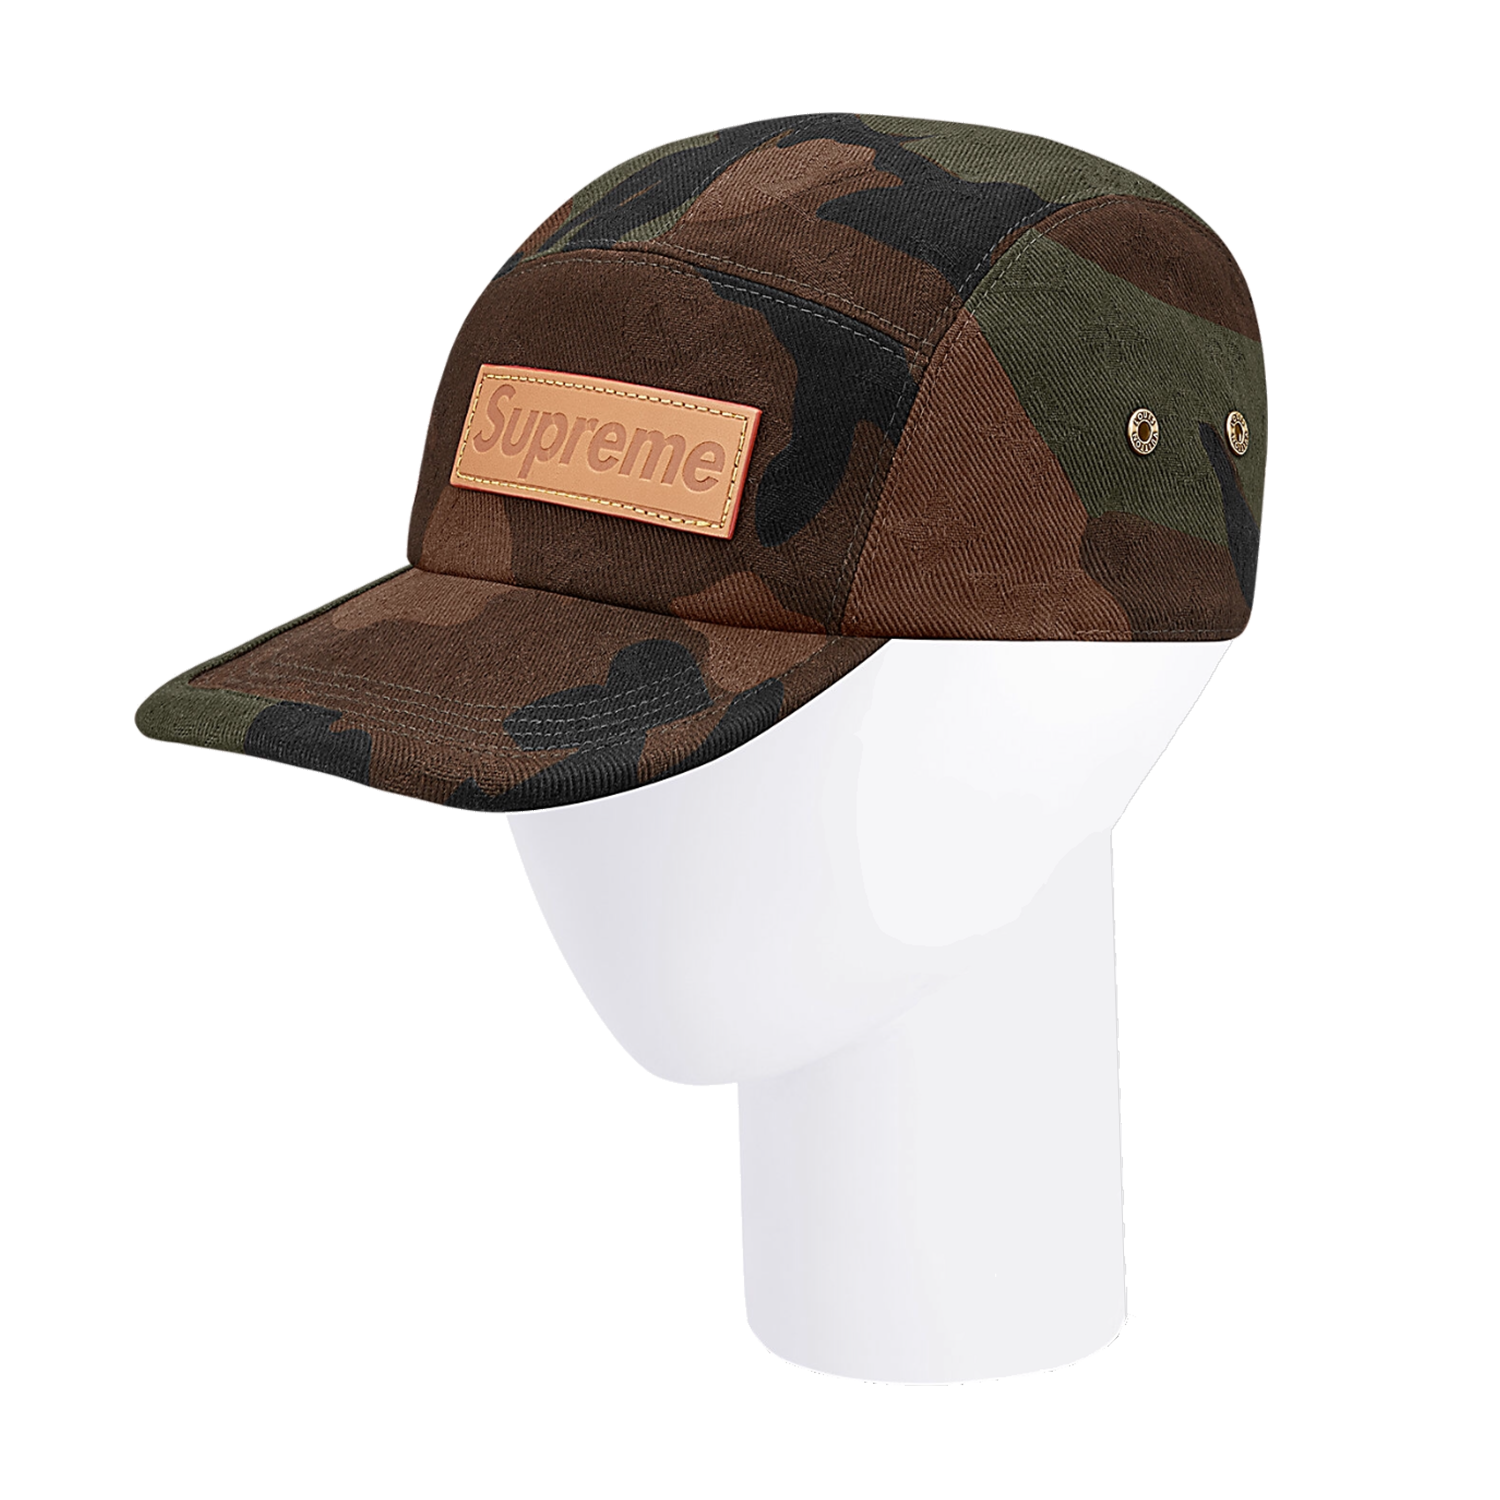 SUPREME 5 PANELS CAP - €350 $515MP1875CAMO